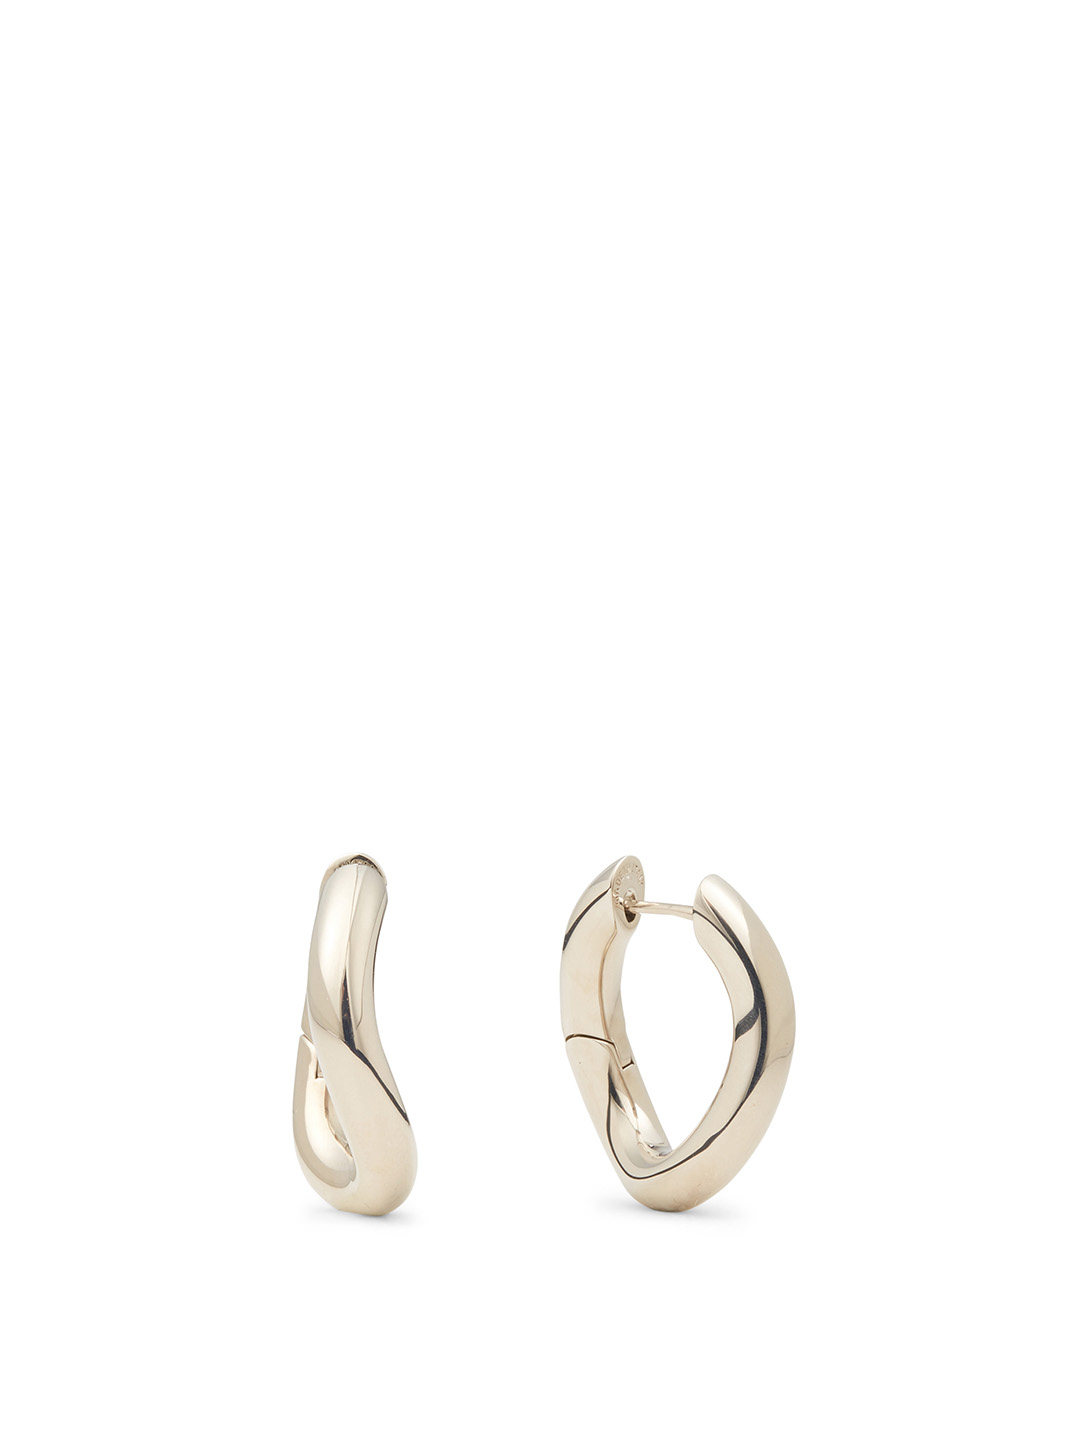 BALENCIAGA XS Loop Earrings Women's Metallic